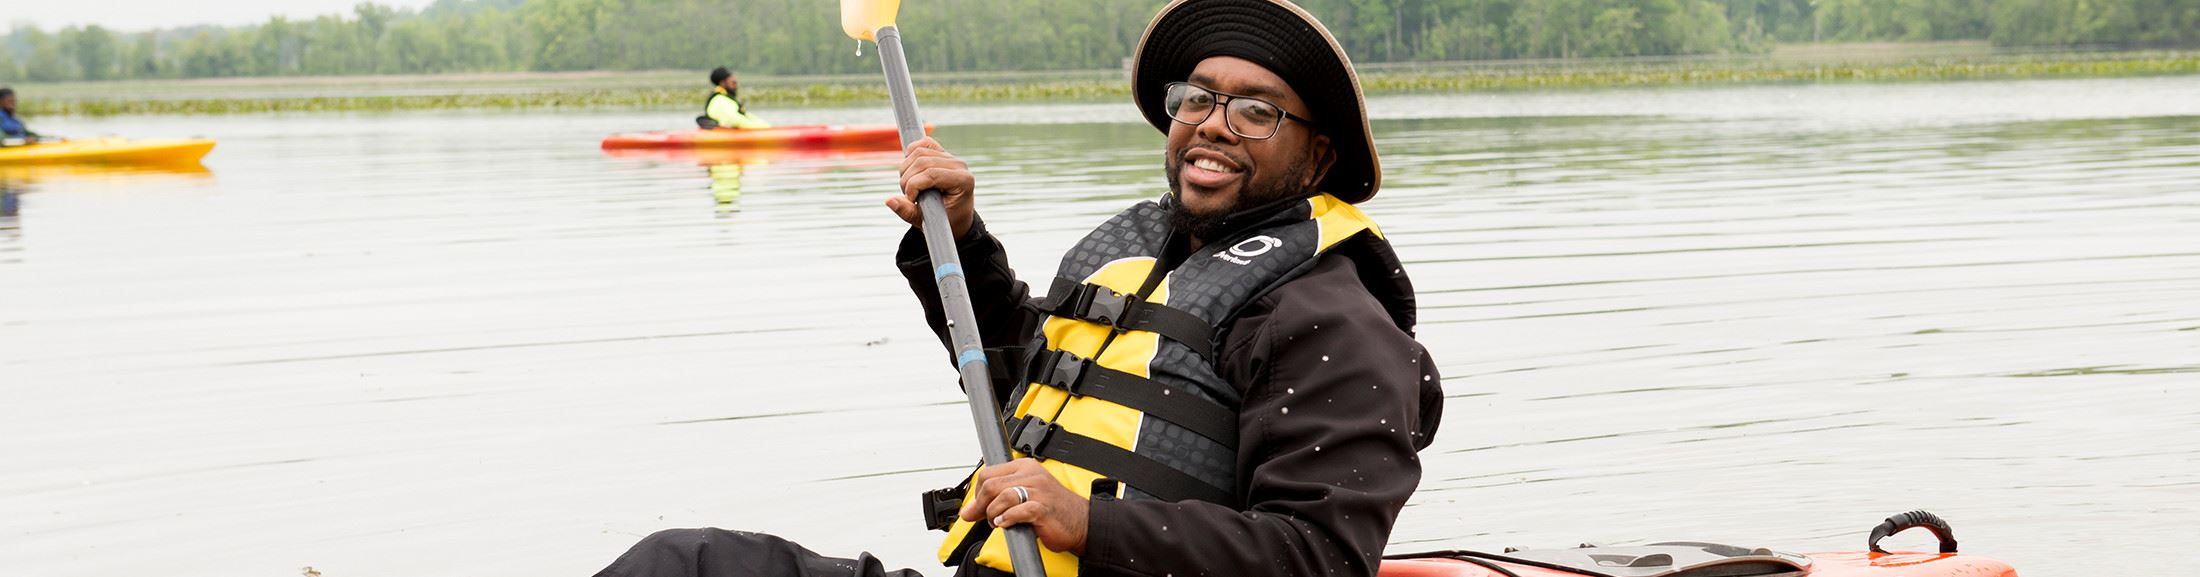 A man smiling while he kayaks